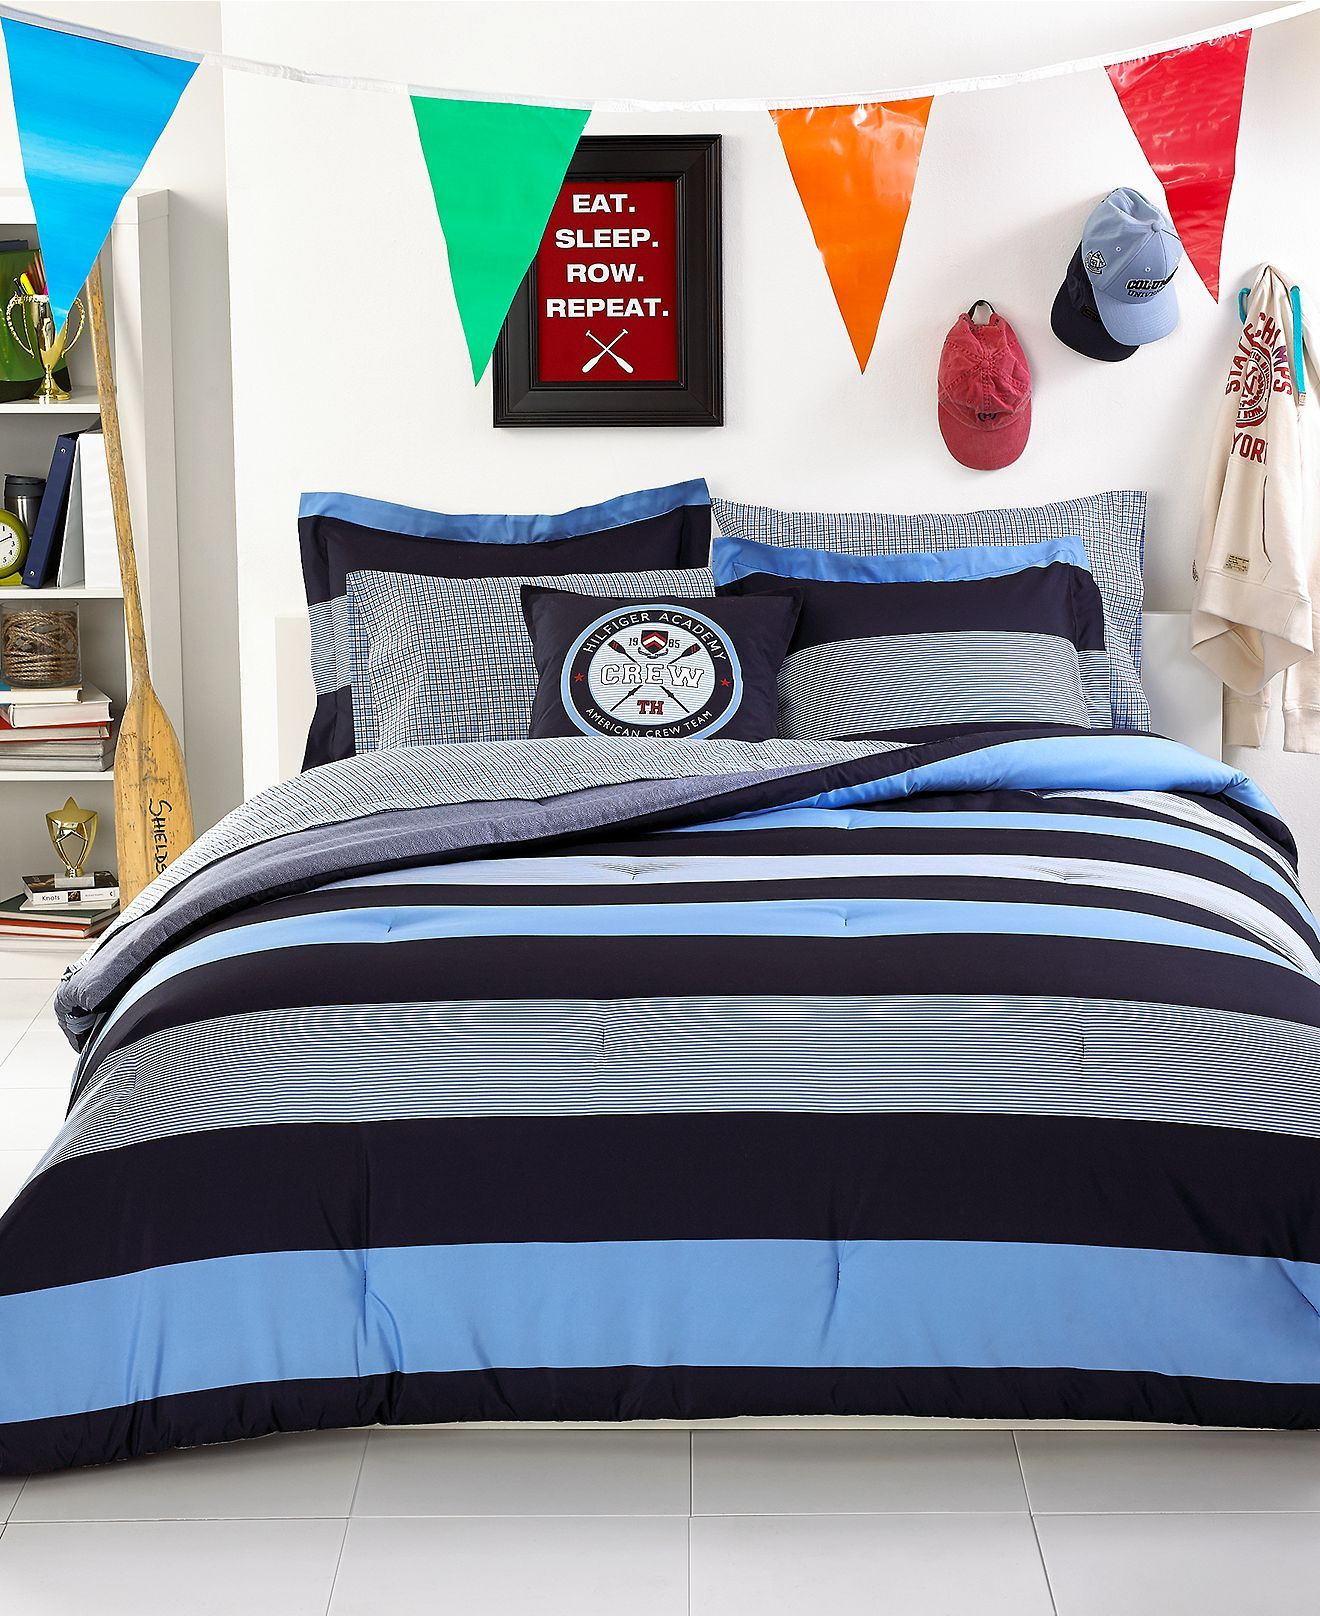 Tommy Hilfiger Bedding Wyndham Rugby Comforter Sets Bed In A Bag Bed Bath Macy 39 S